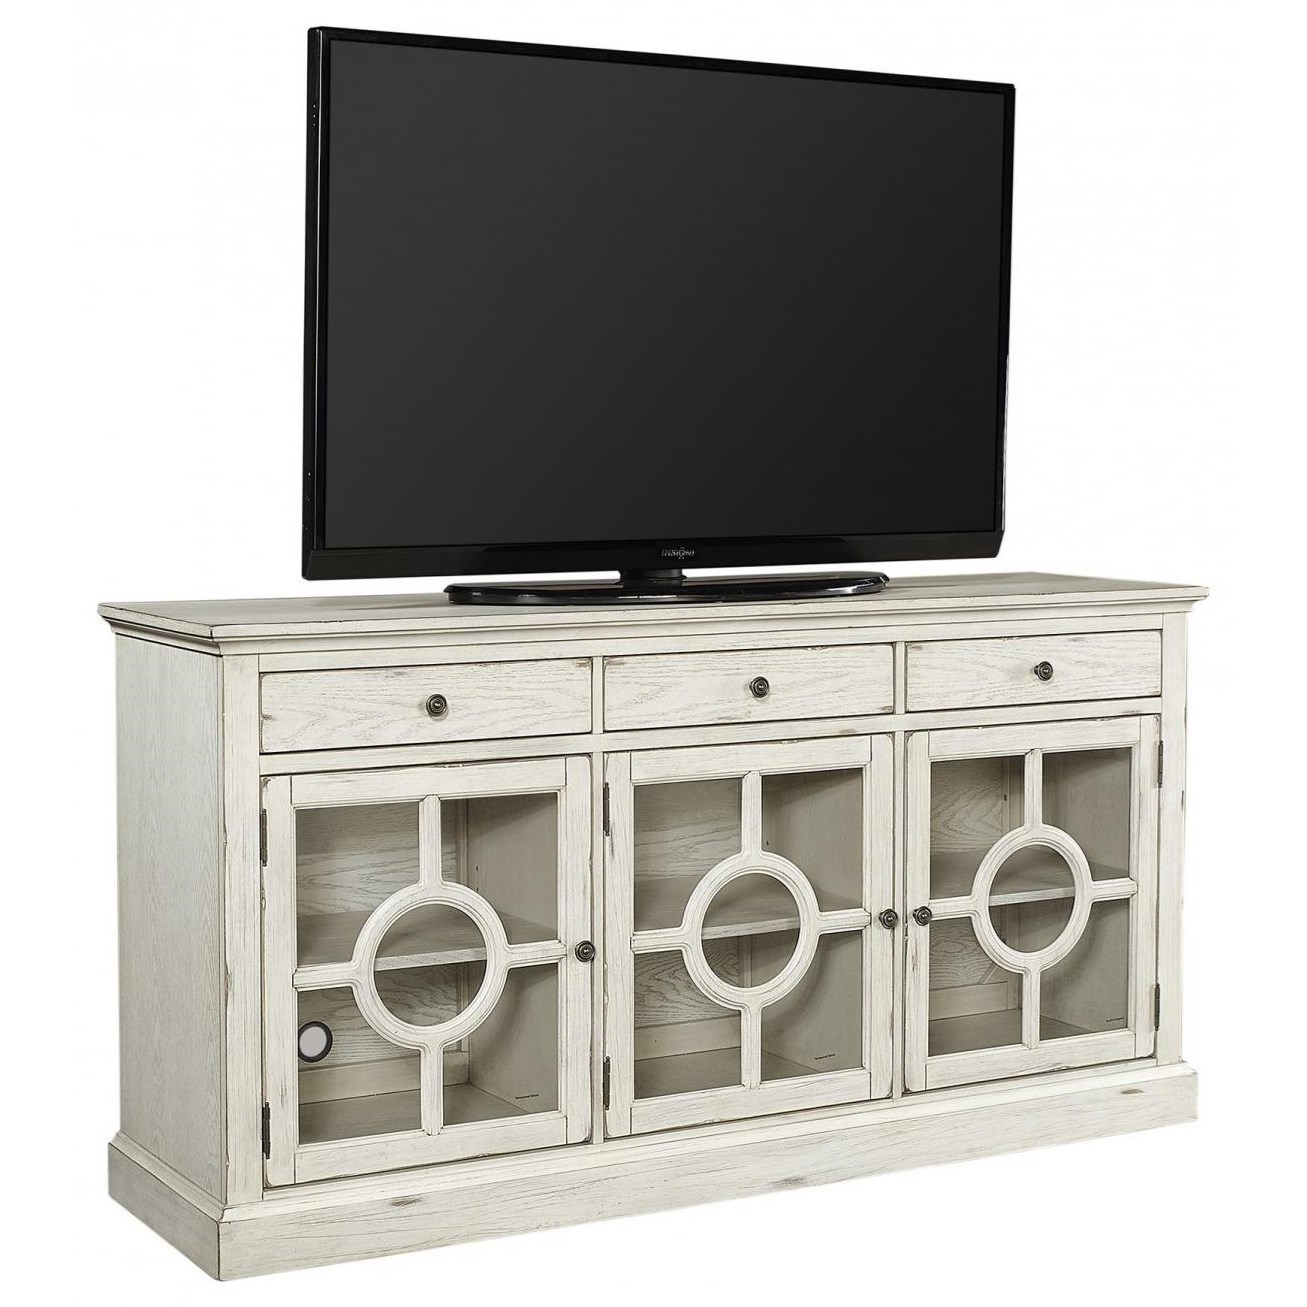 """Radius  66"""" TV Stand by Aspenhome at Walker's Furniture"""